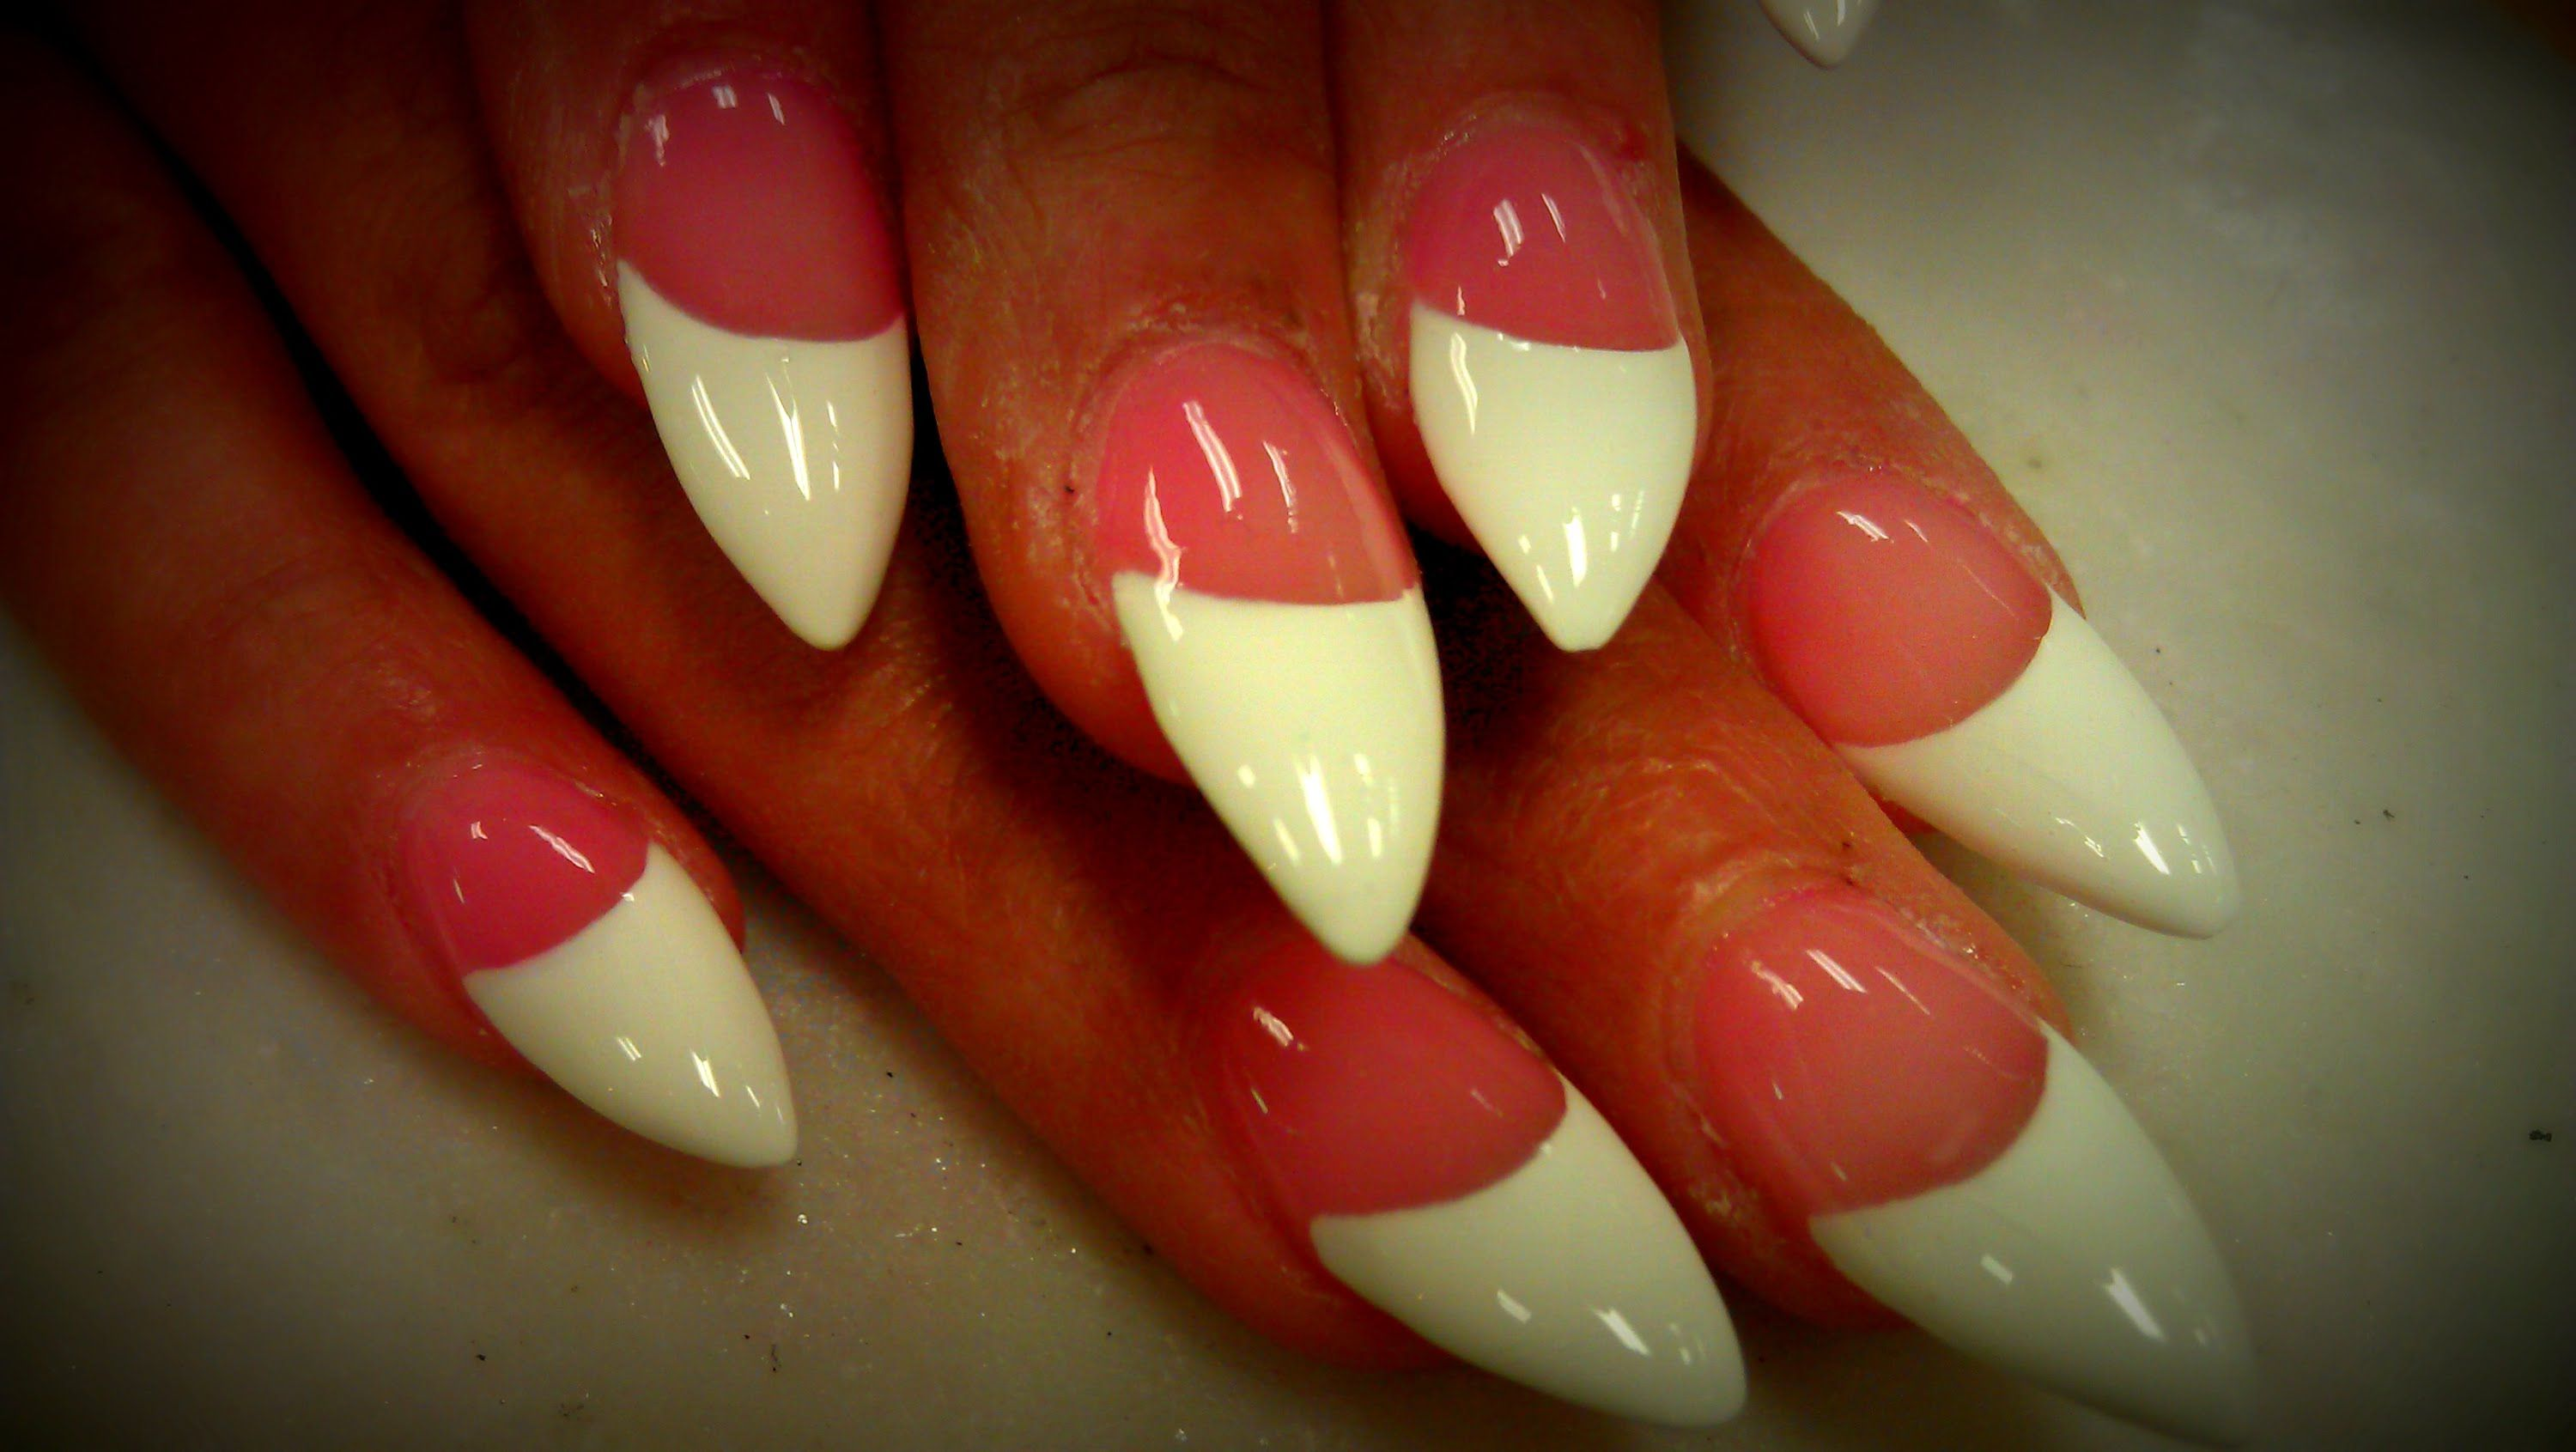 FRENCH MANICURE DESIGN ON STILETTO NAILS | NAILS | Pinterest ...